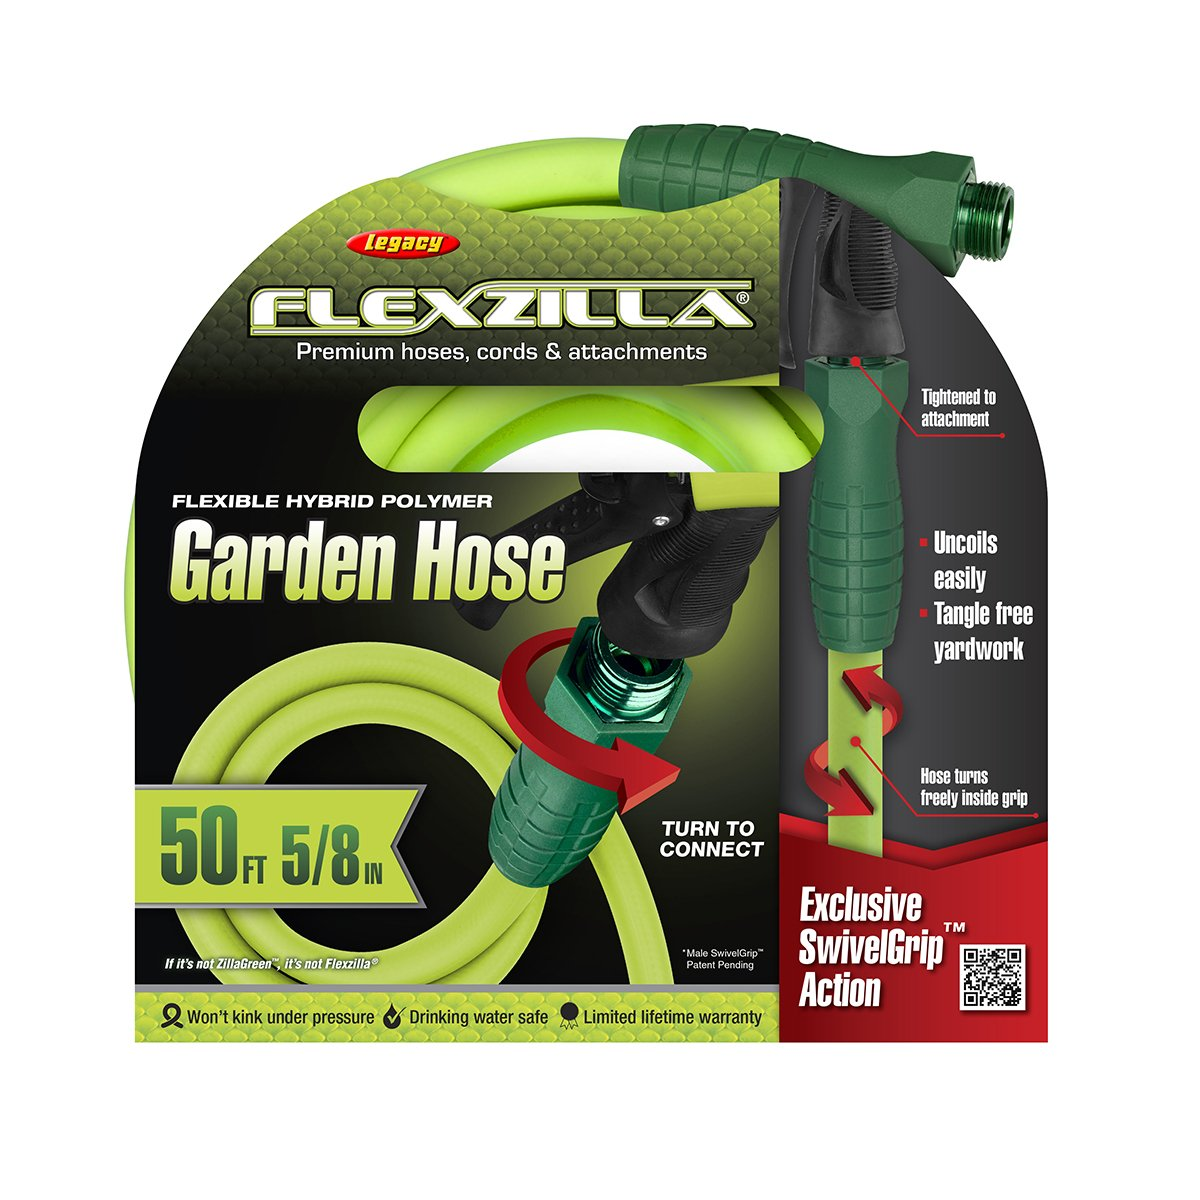 Amazon.com : Flexzilla Garden Hose With SwivelGrip, 5/8 In. X 50 Ft, Heavy  Duty, Lightweight, Drinking Water Safe   HFZG550YWS : Garden U0026 Outdoor